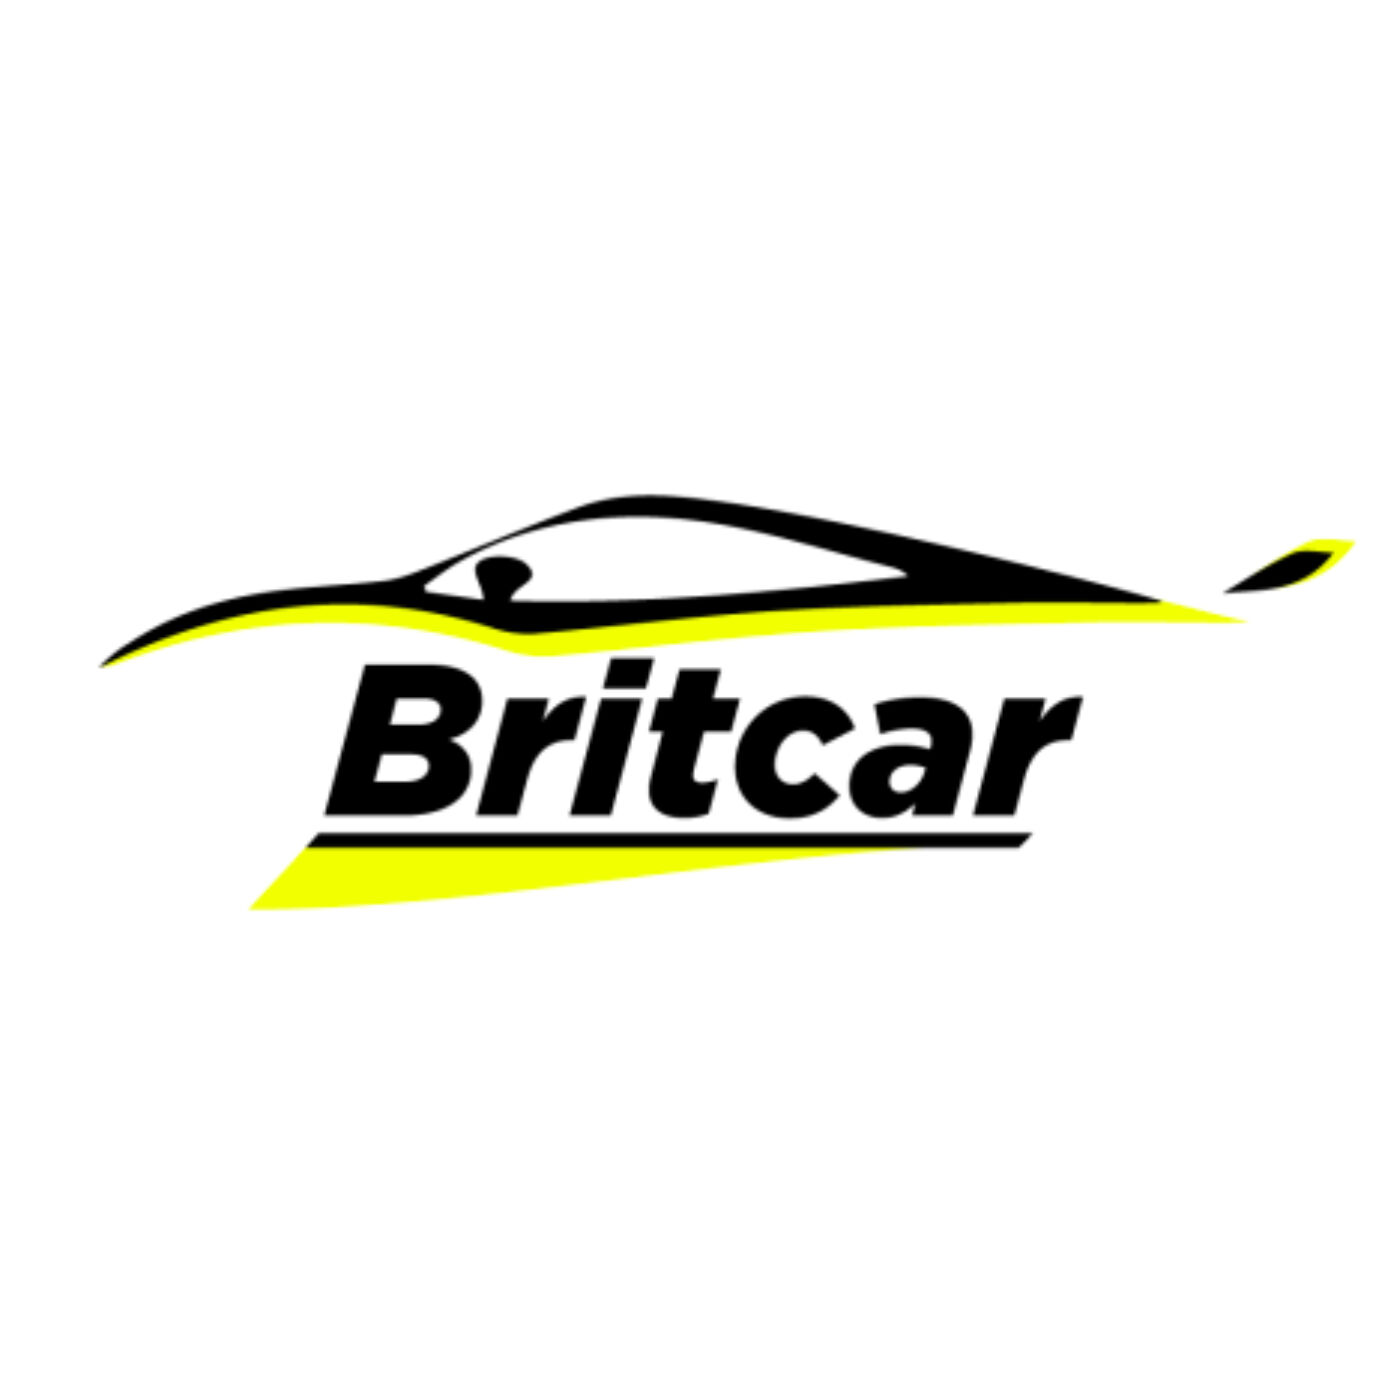 Claire Hedley - The Britcar Endurance championship 2021